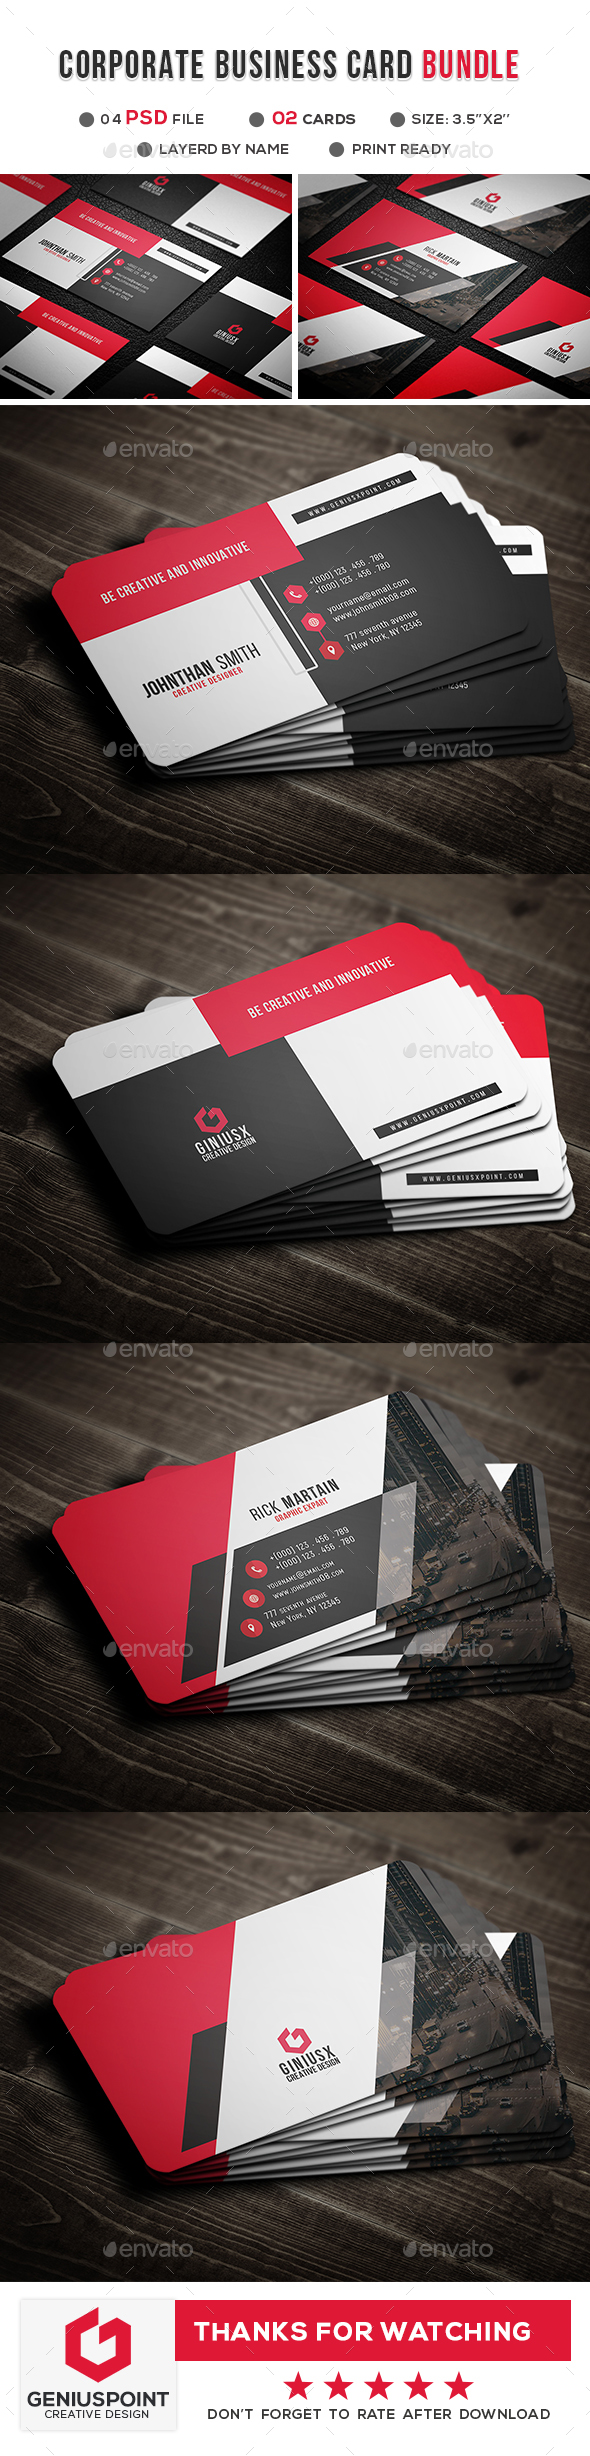 Business Card Templates & Designs from GraphicRiver